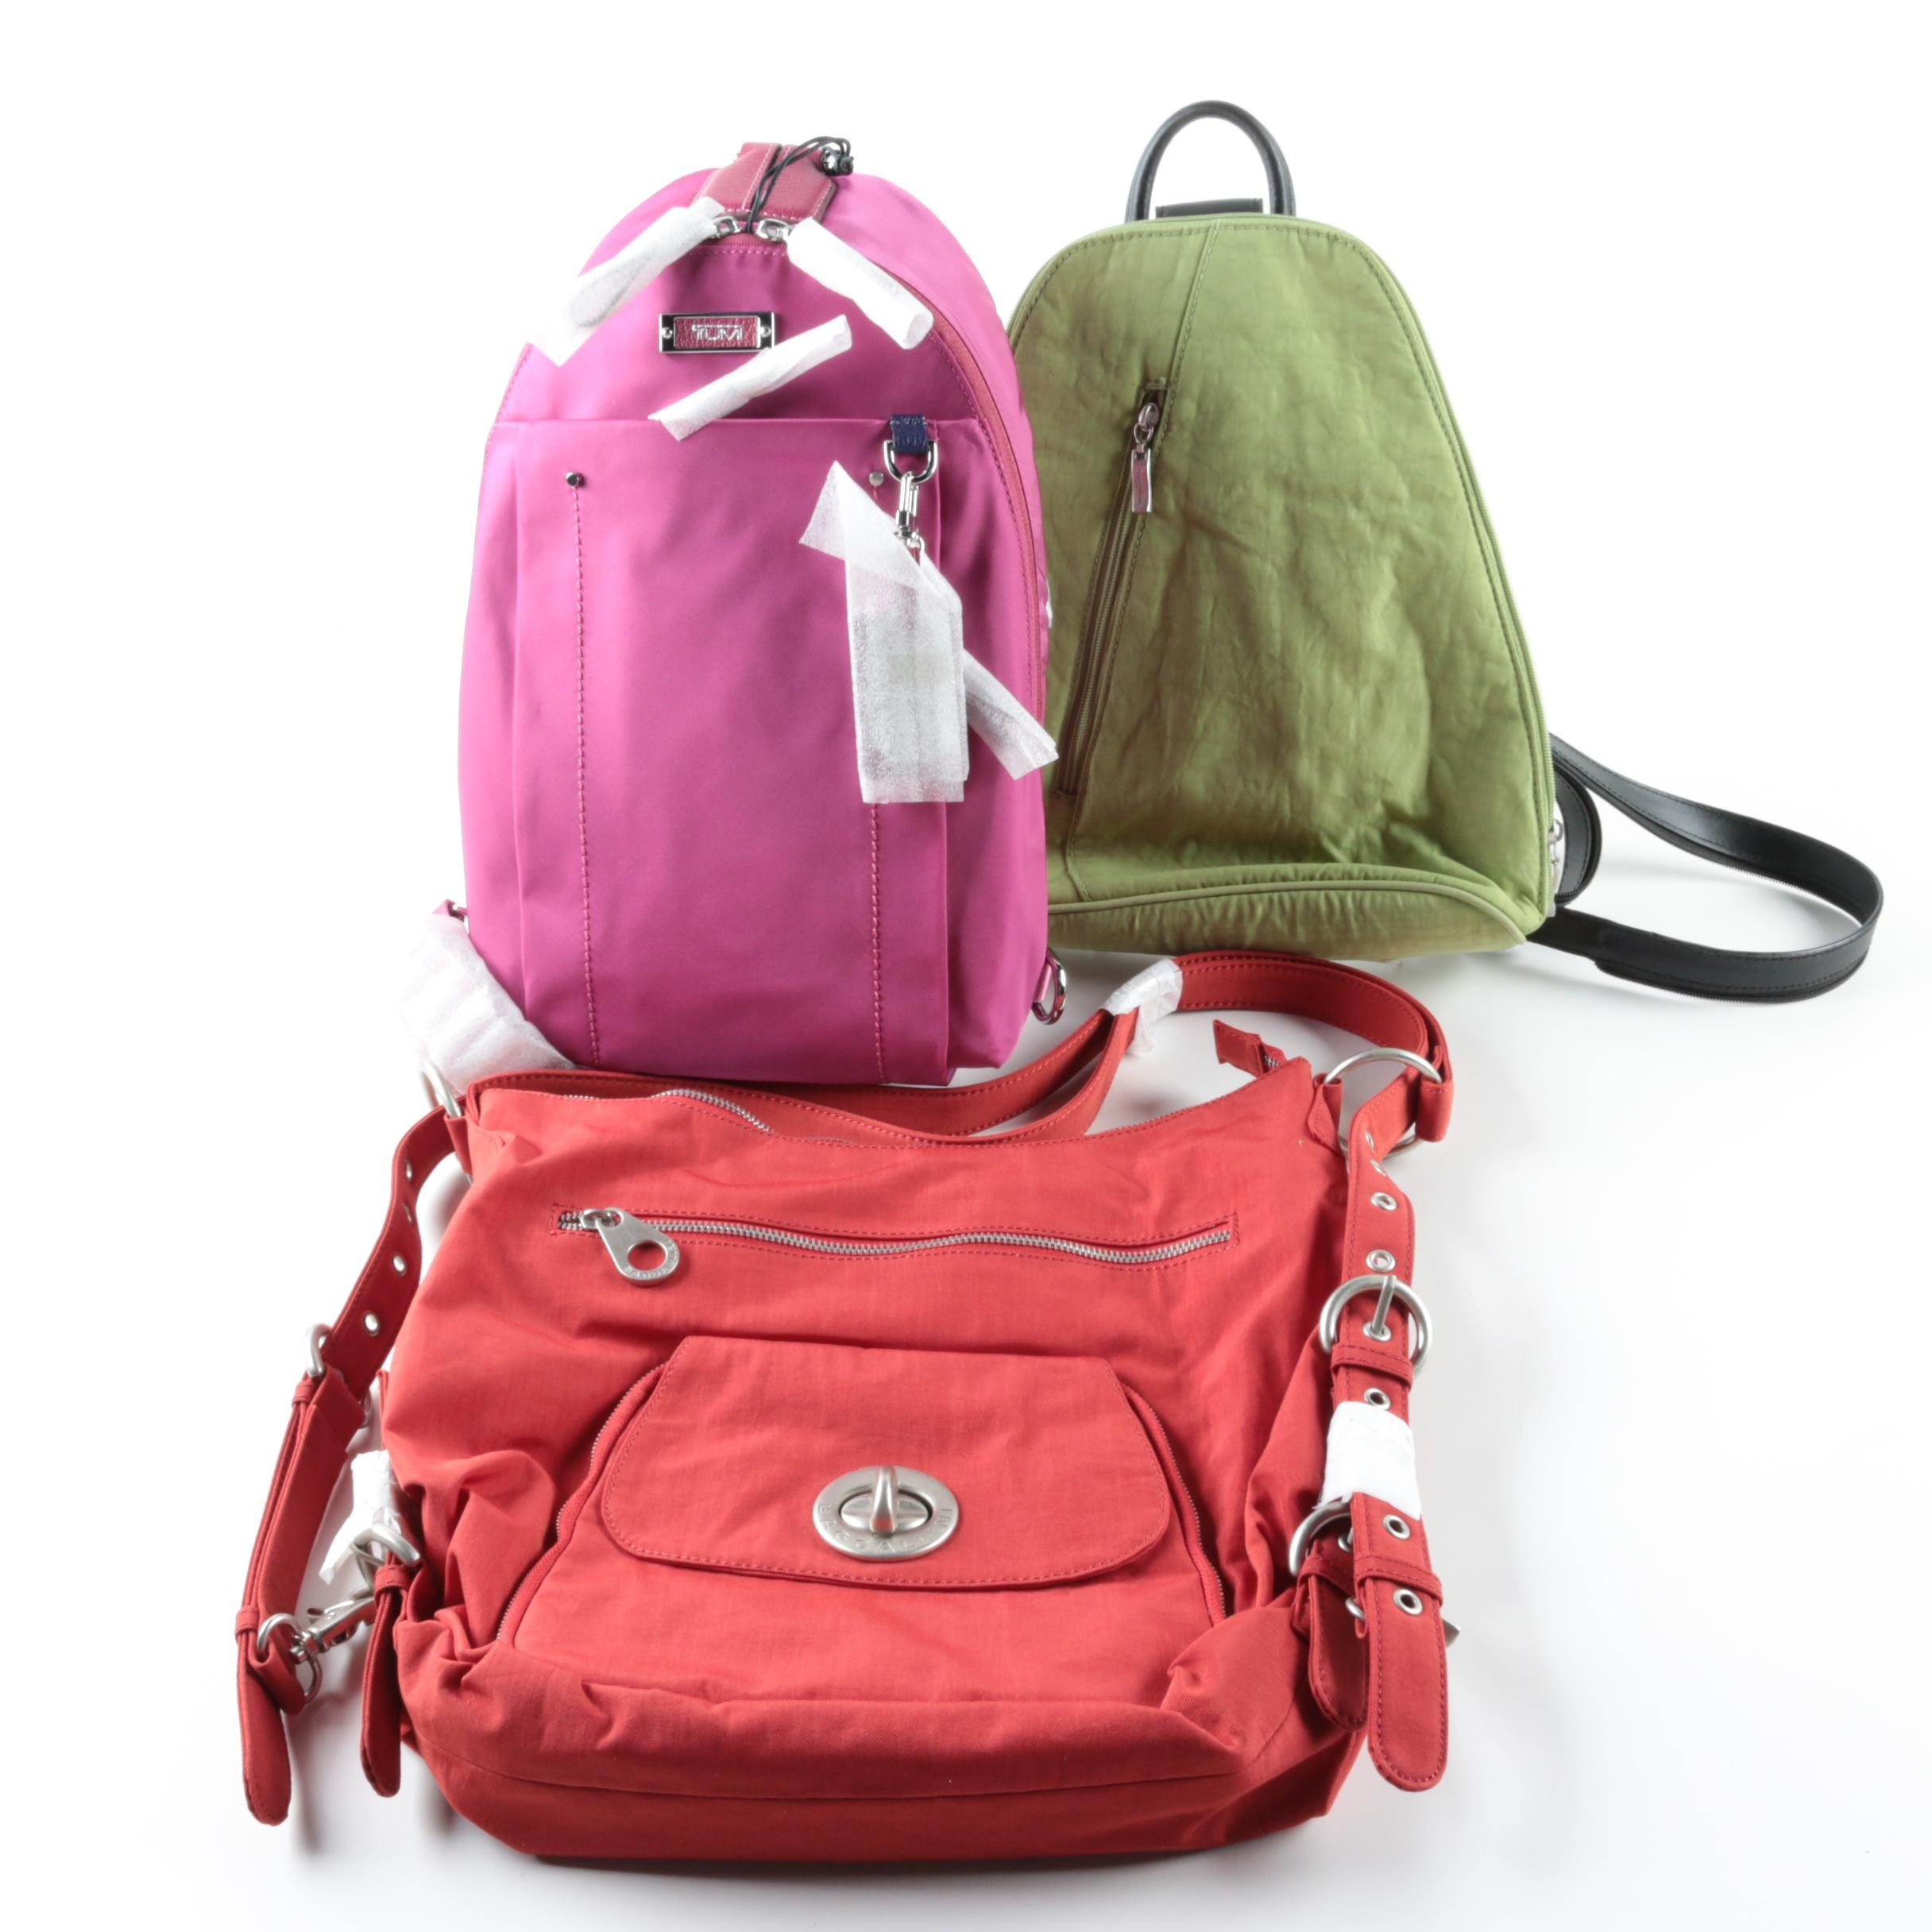 Tumi and Baggallini Backpack Purses